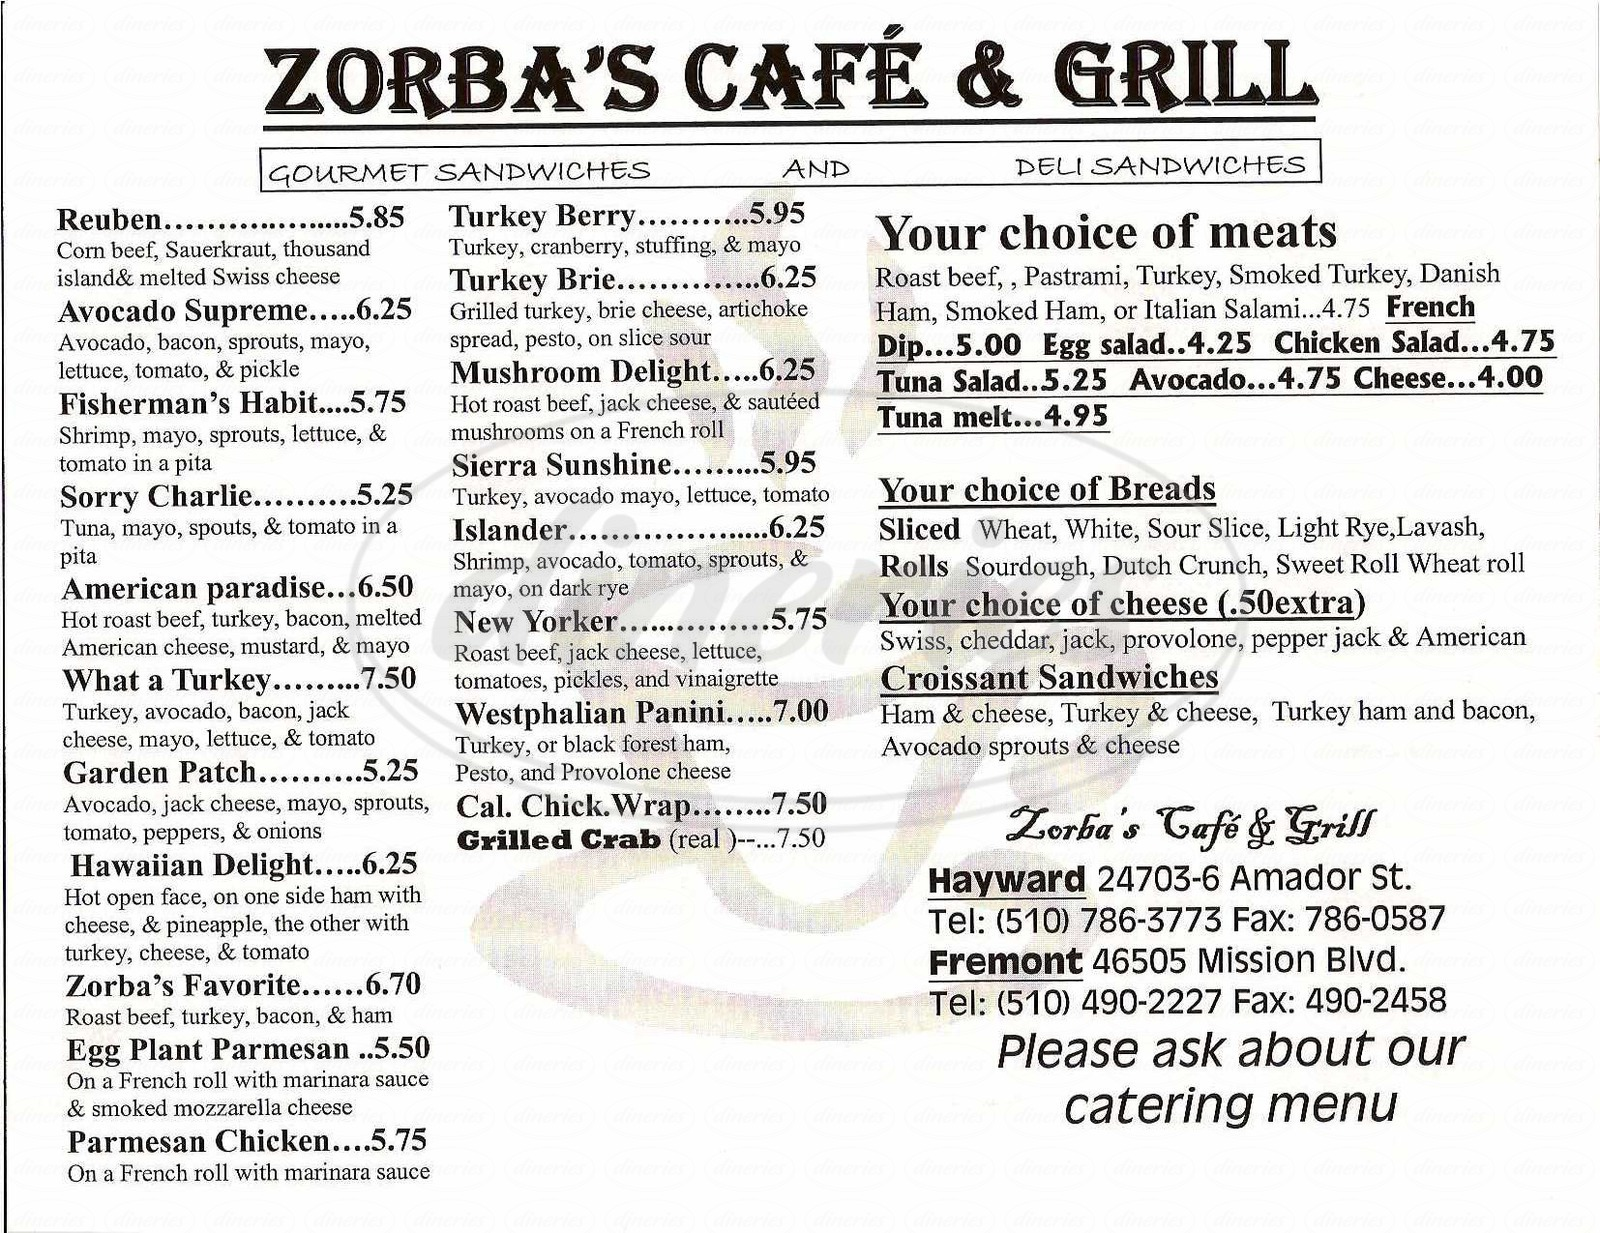 menu for Zorba's Café and Grill